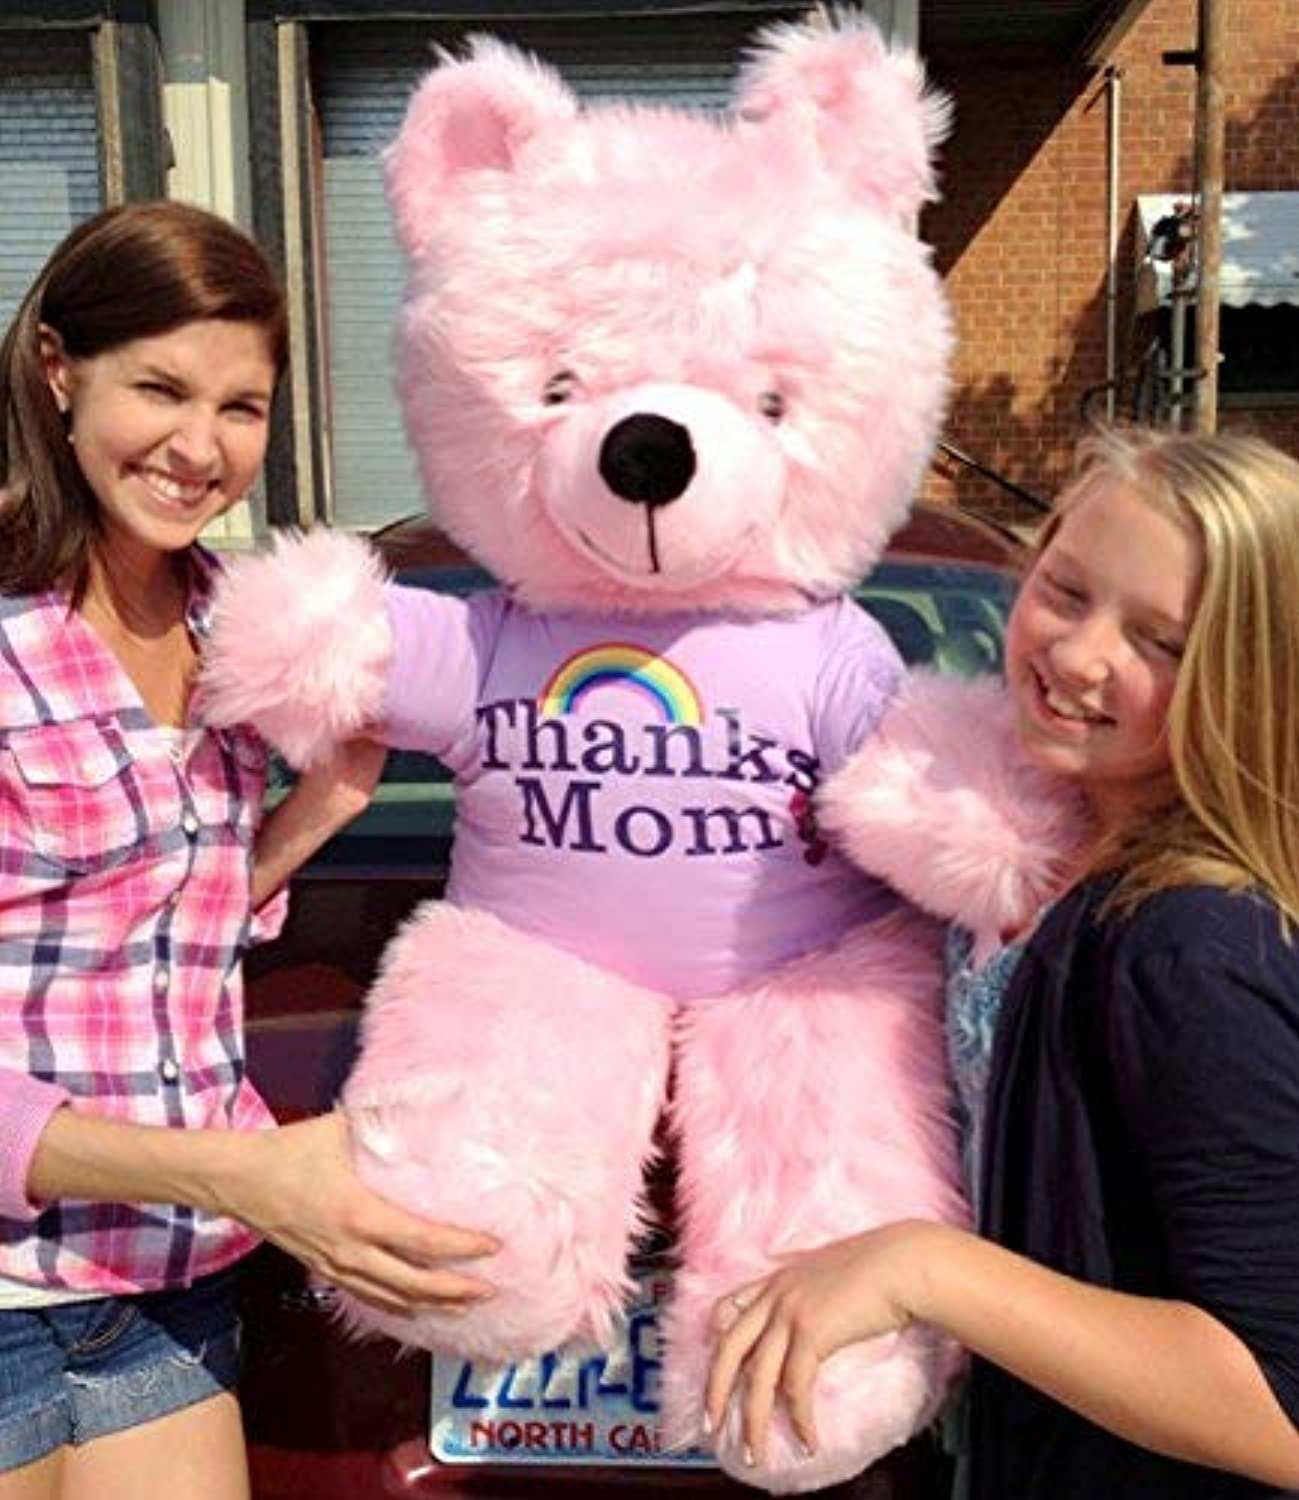 45 Inches Tall Big Pink Teddy Bear for Mom  Wears Thanks Mom Tshirt with Image of a Rainbow  3 and 3 4feettall Giant Teddy Bear  Made in The USA America